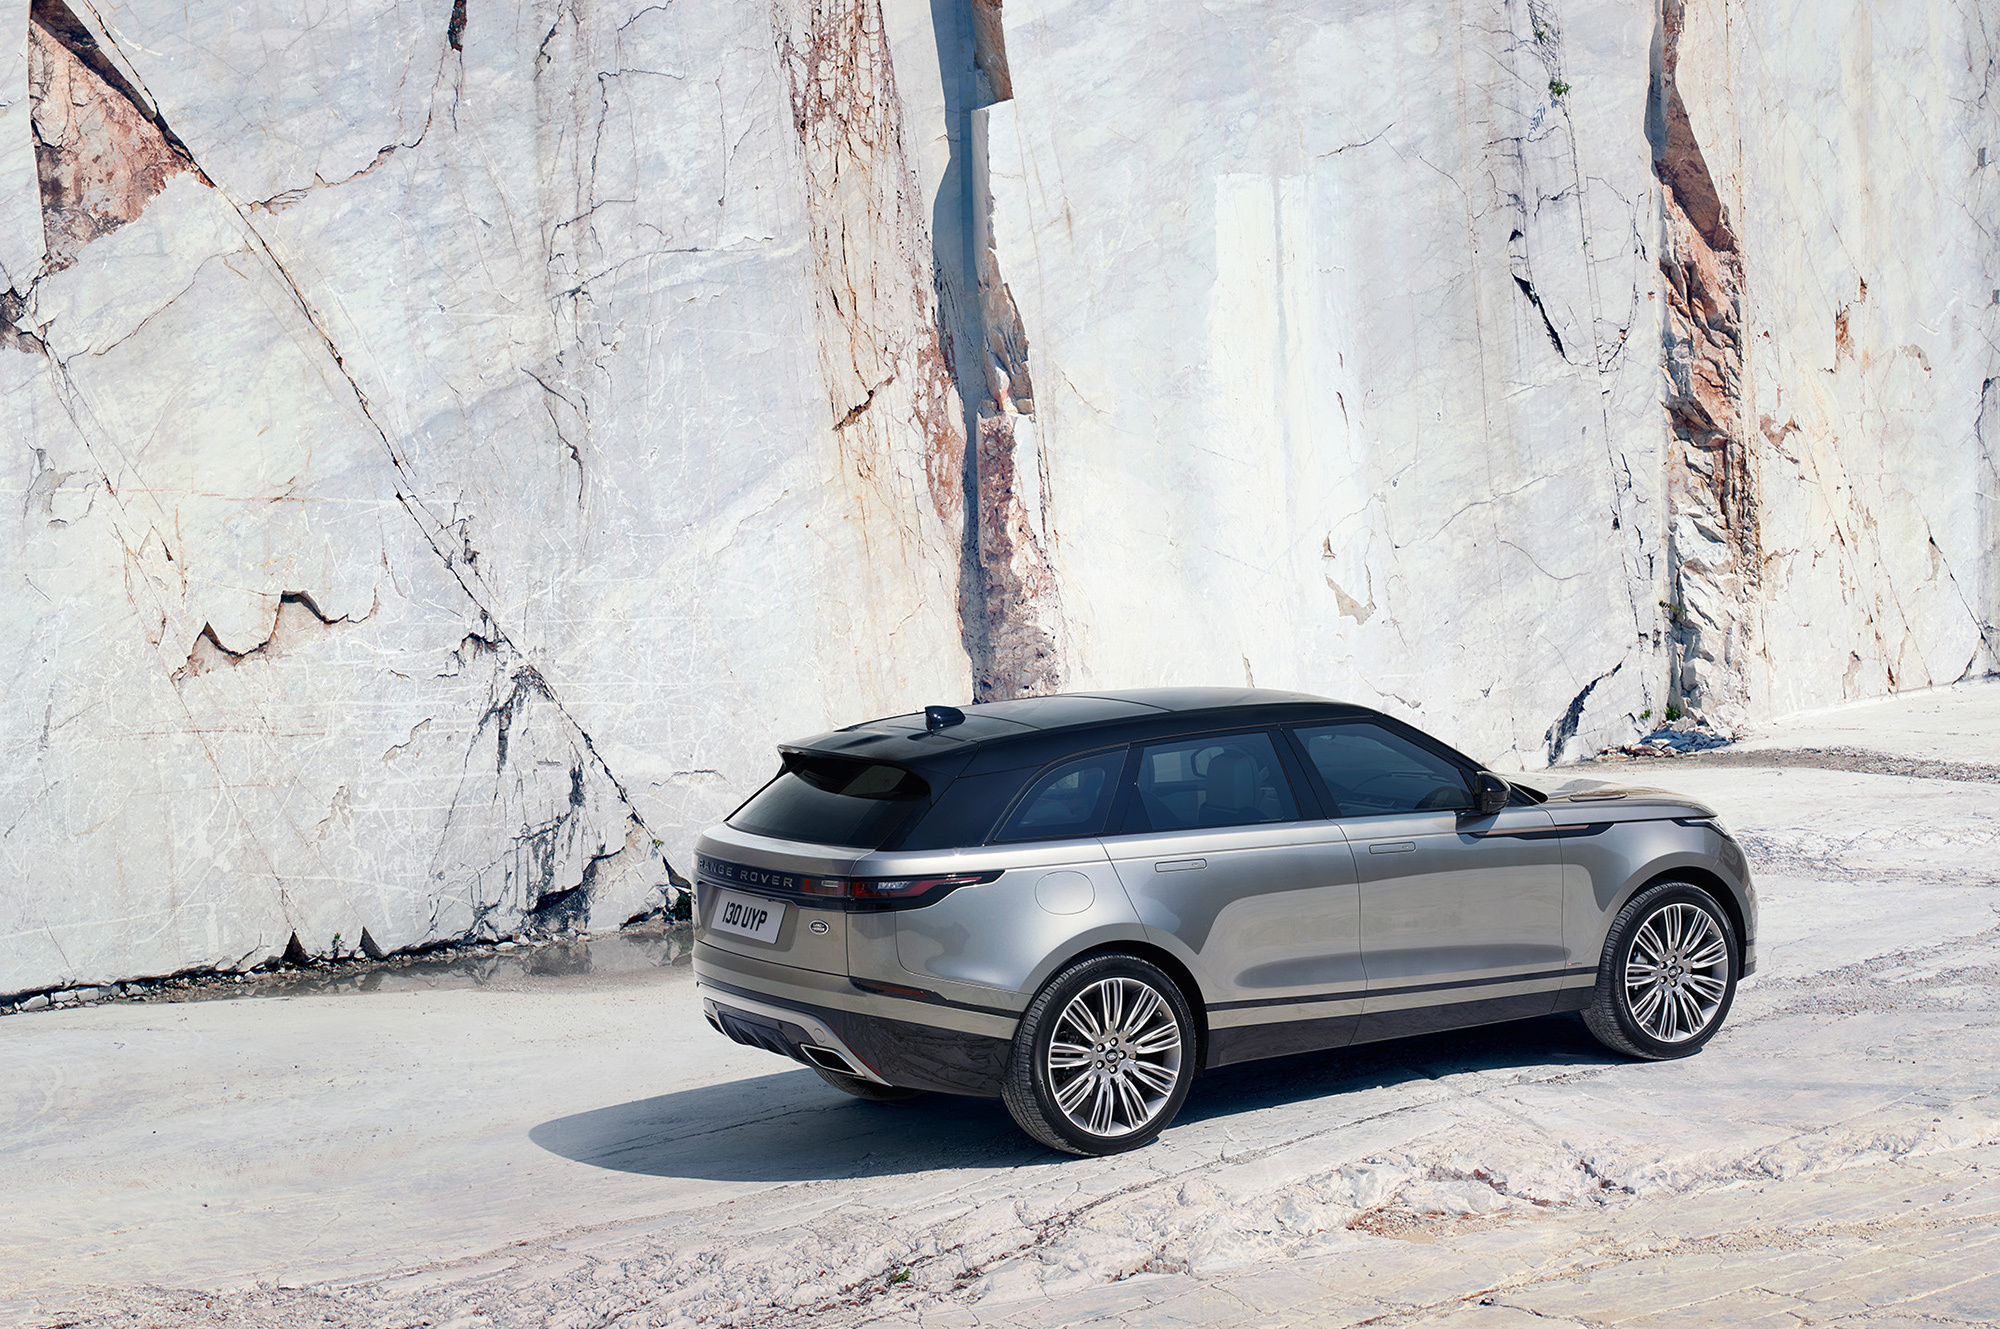 Range Rover Velar Wallpapers Images Photos Pictures